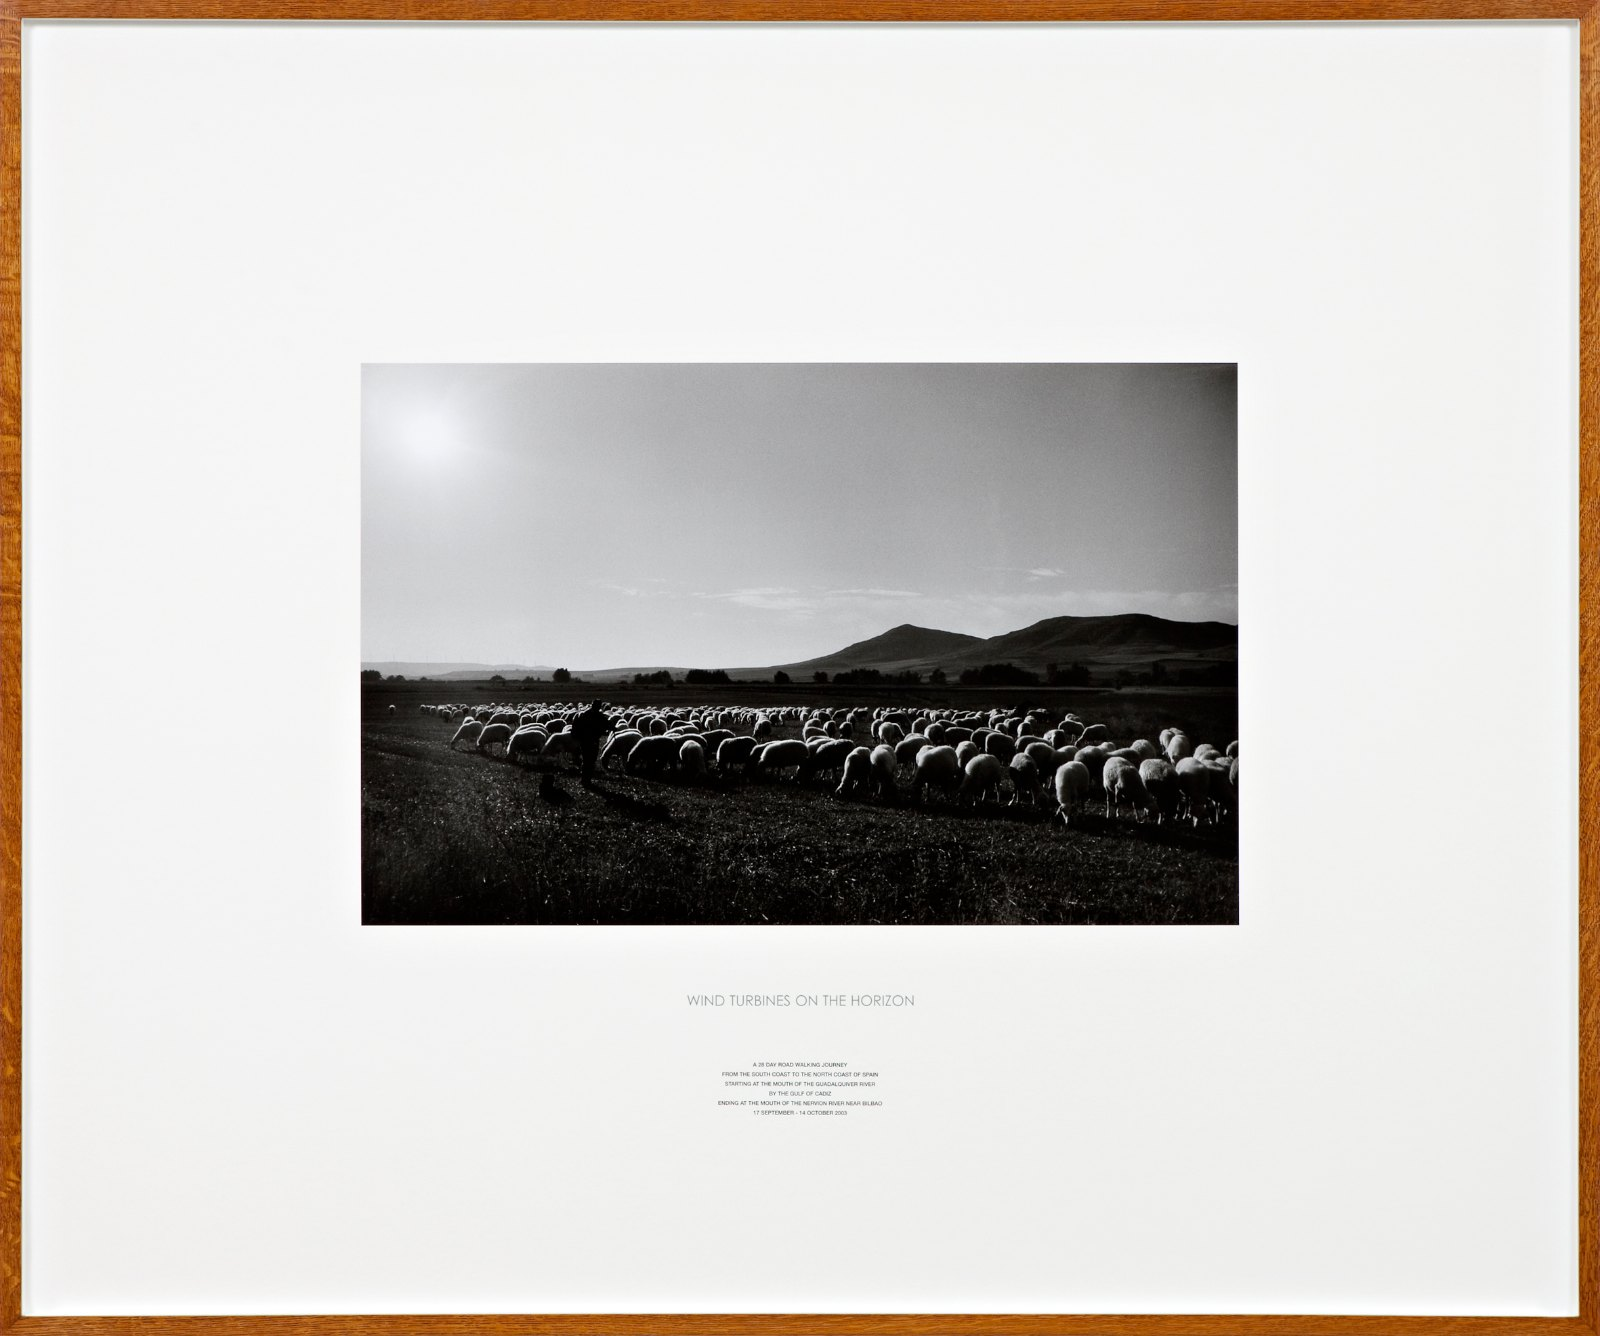 Wind Turbines on the Horizon, Spain 2003, silver gelatin photograph and letterpress in artist frame, unique, 116,5 x 140 cm